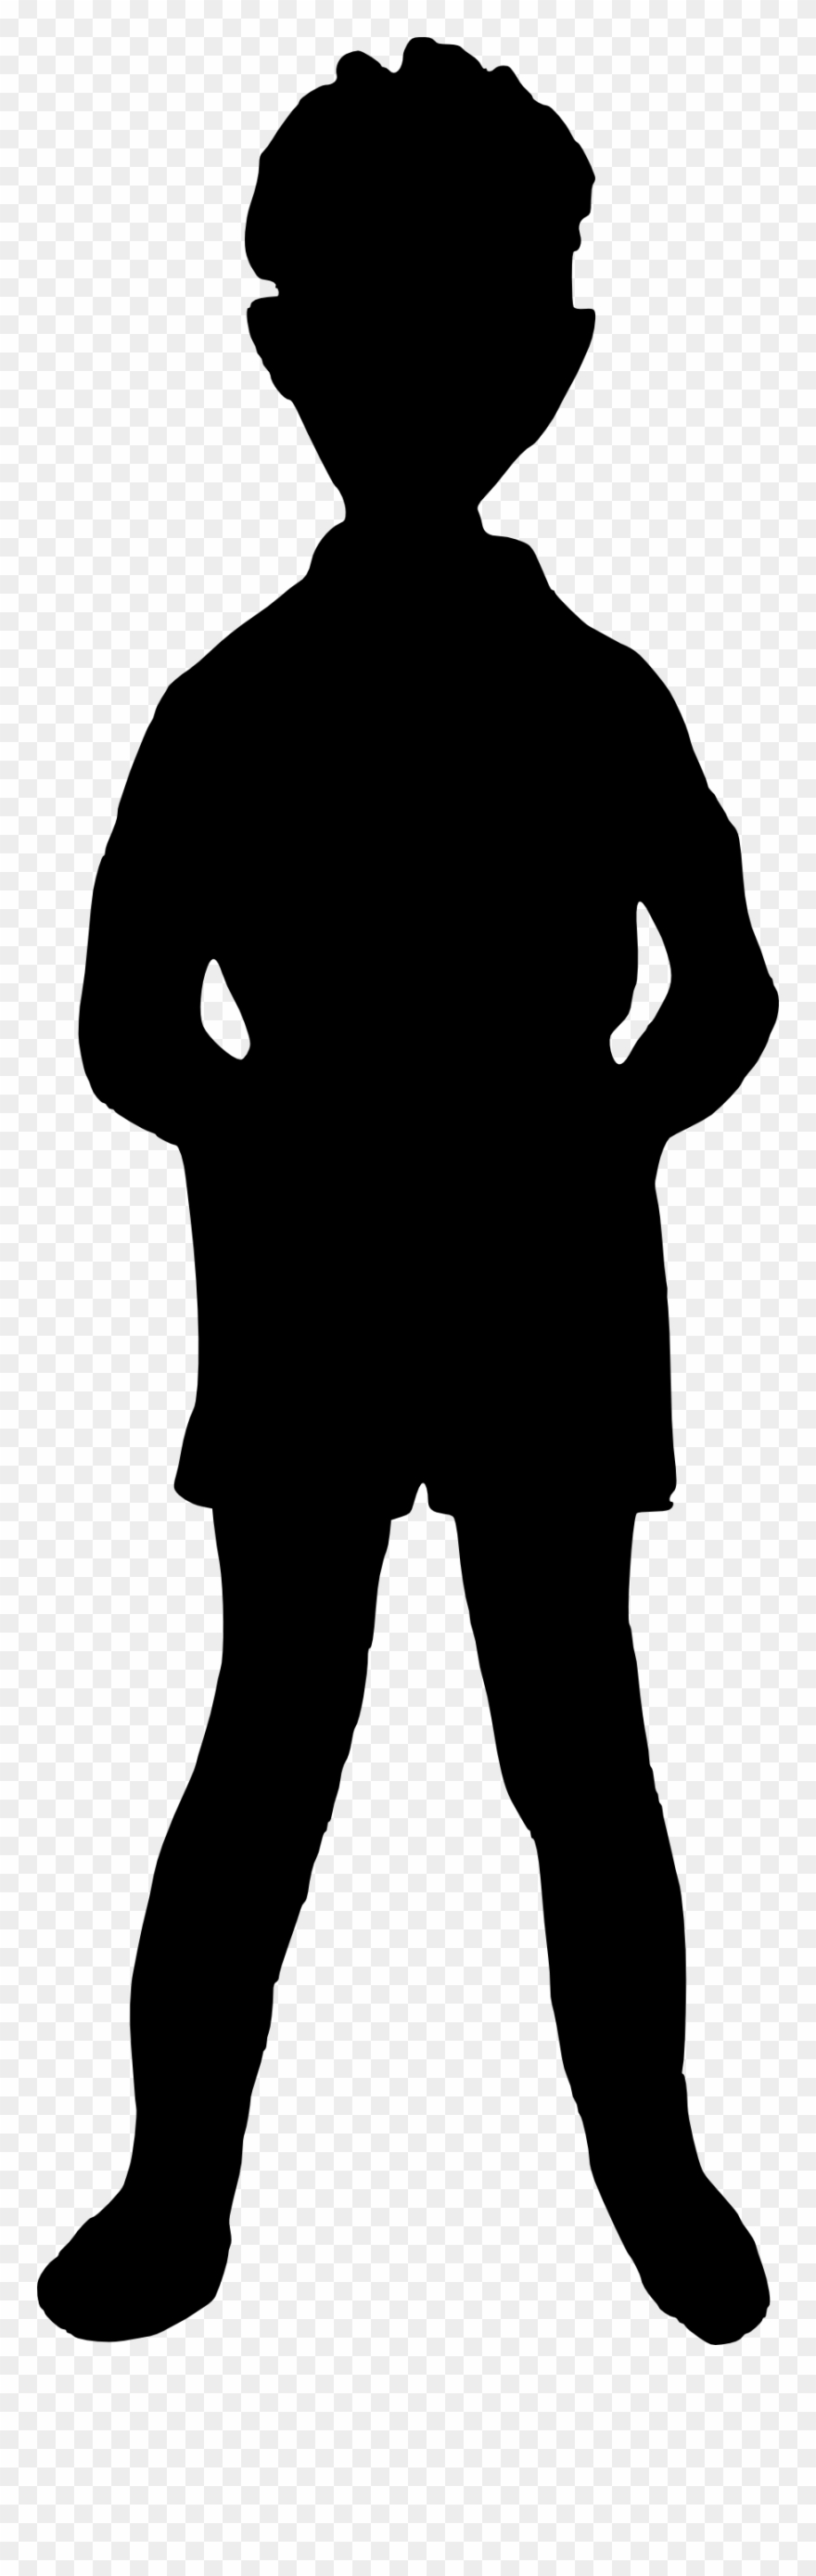 Boy standing alone clipart vlack and white clip free library Clip Art Library Stock Boy Transparent Standing Alone - Boy ... clip free library